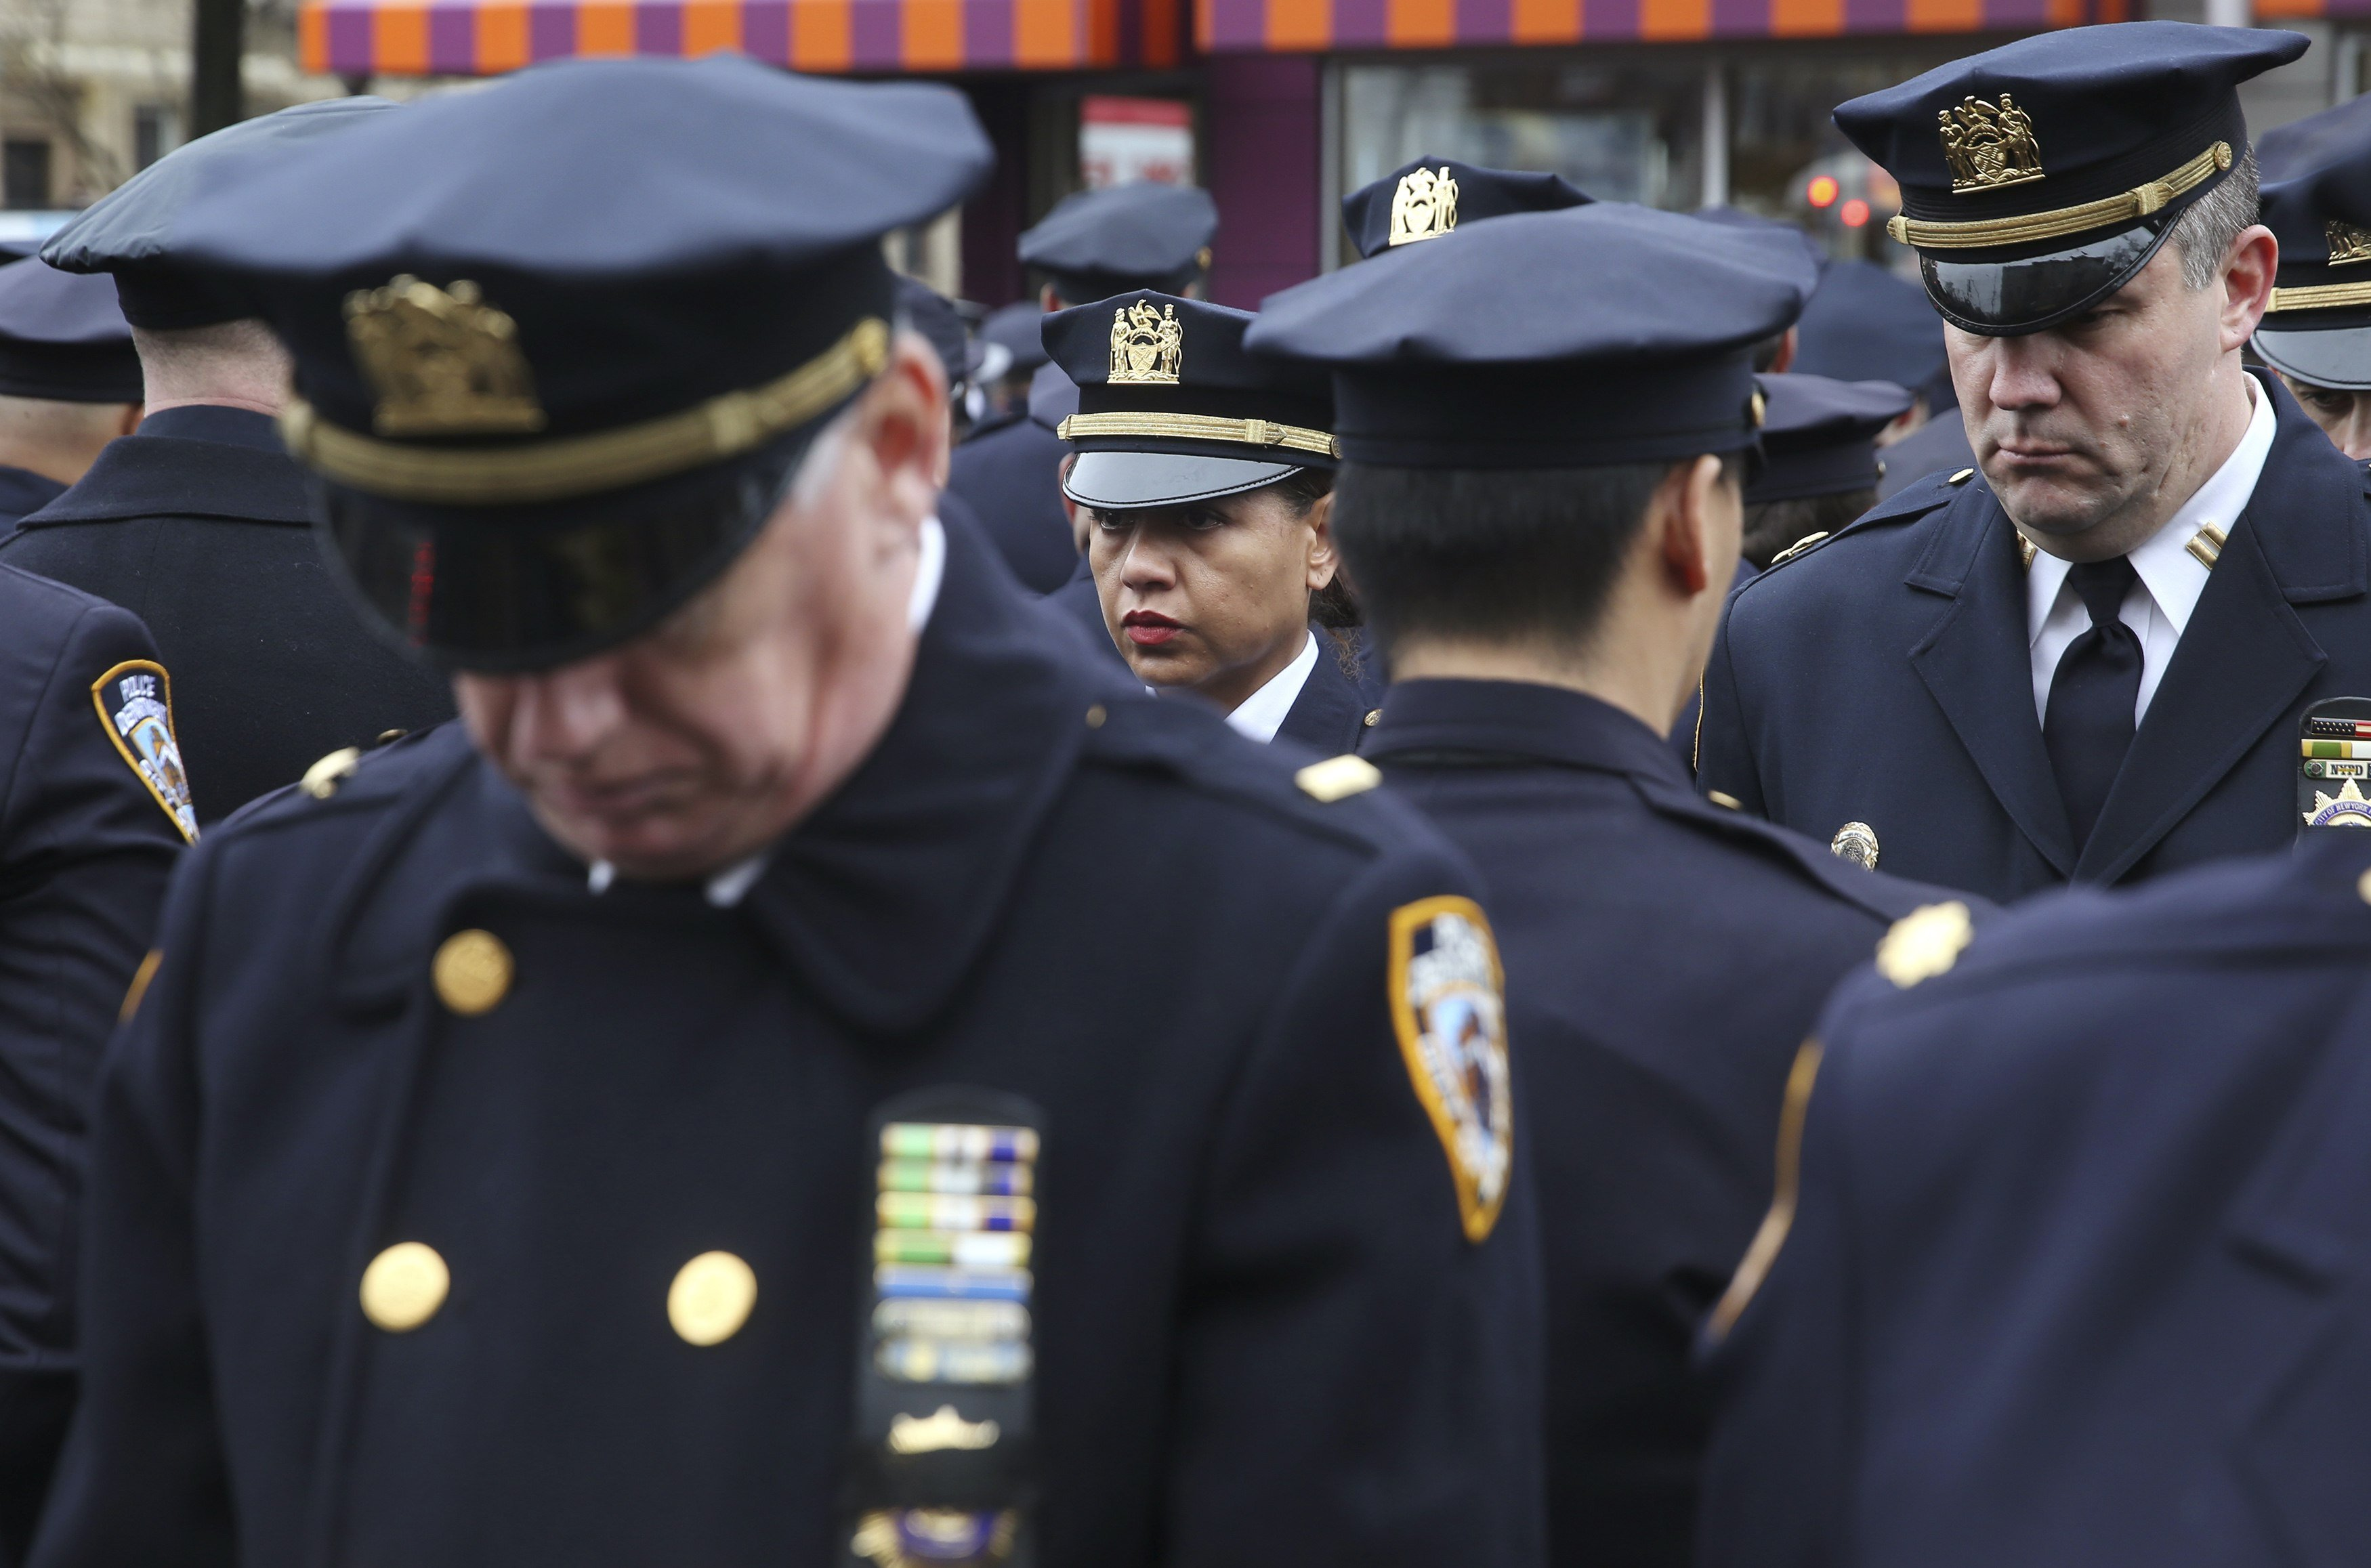 Law enforcement officers stand with some turning their backs as New York City Mayor Bill de Blasio speaks on a monitor outside the funeral for NYPD officer Wenjian Liu in the Brooklyn borough of New York on Jan. 4, 2015.